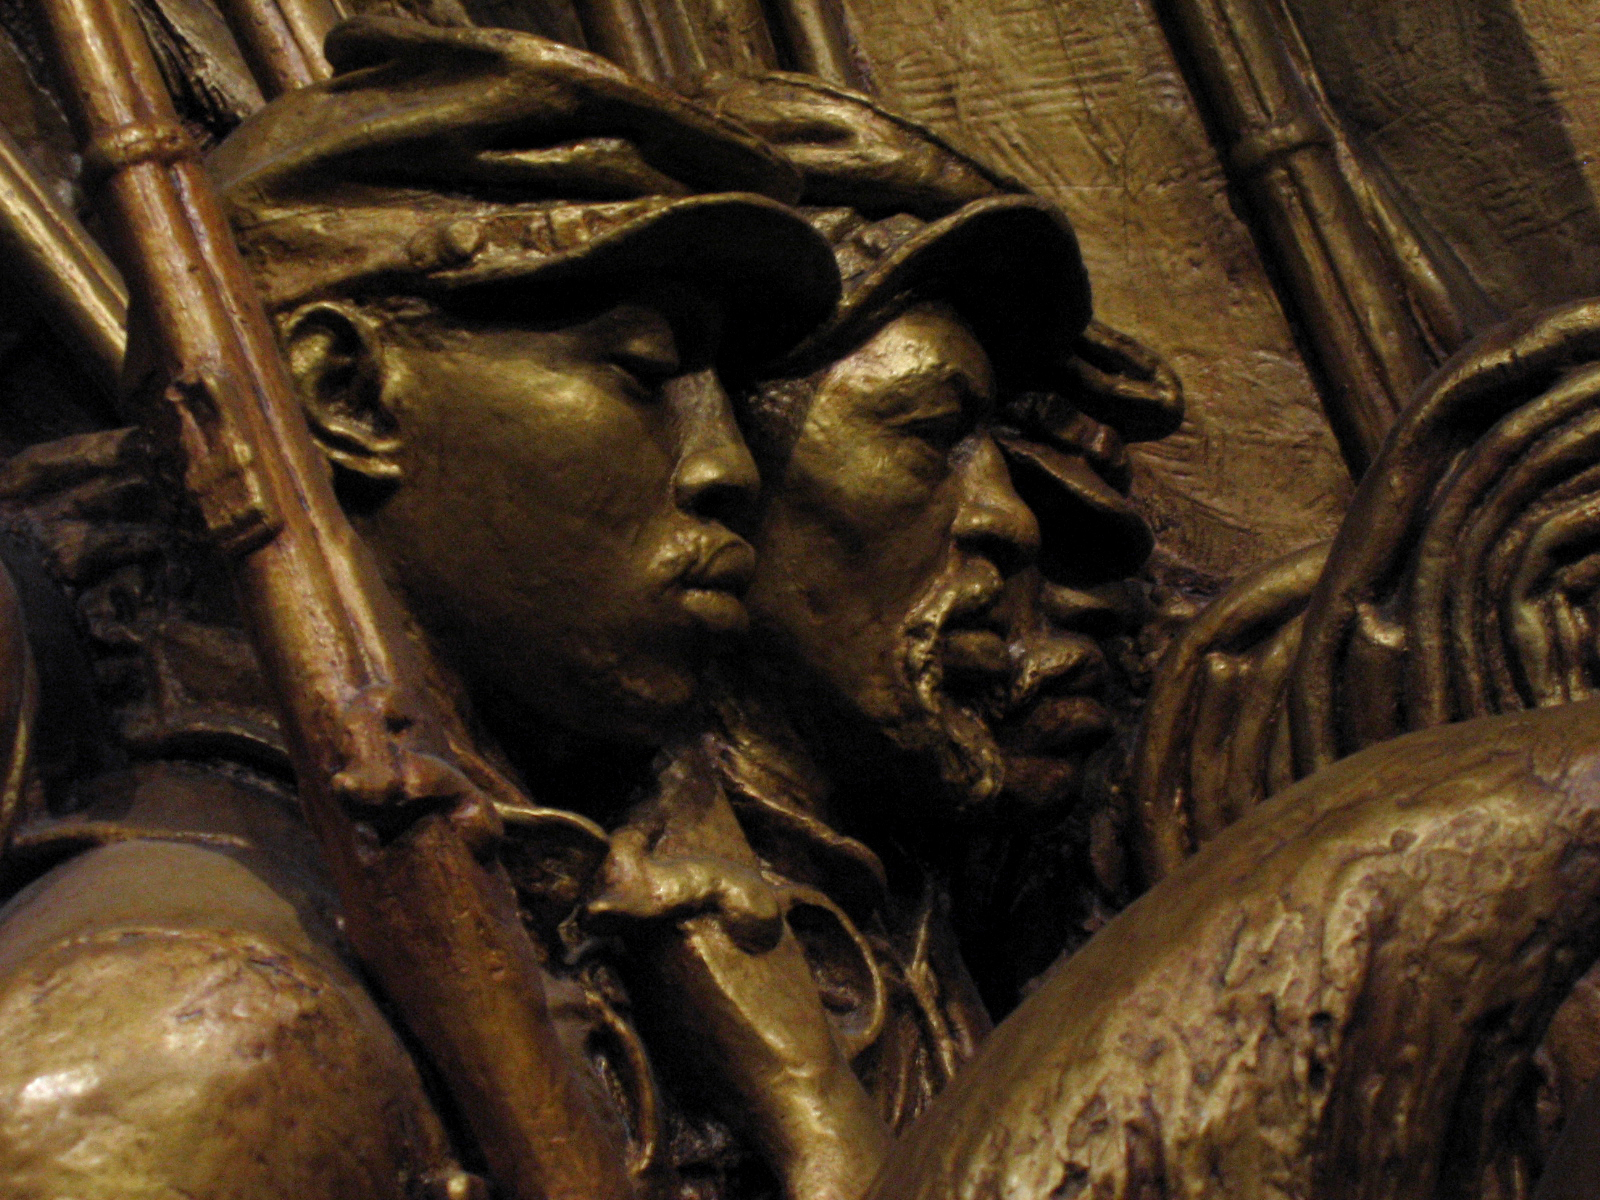 glory robert gould shaw and 54th Colonel robert gould shaw (1837-1863) was the young white civil war union army officer who commanded the otherwise all-black 54th massachusetts volunteer infantry.